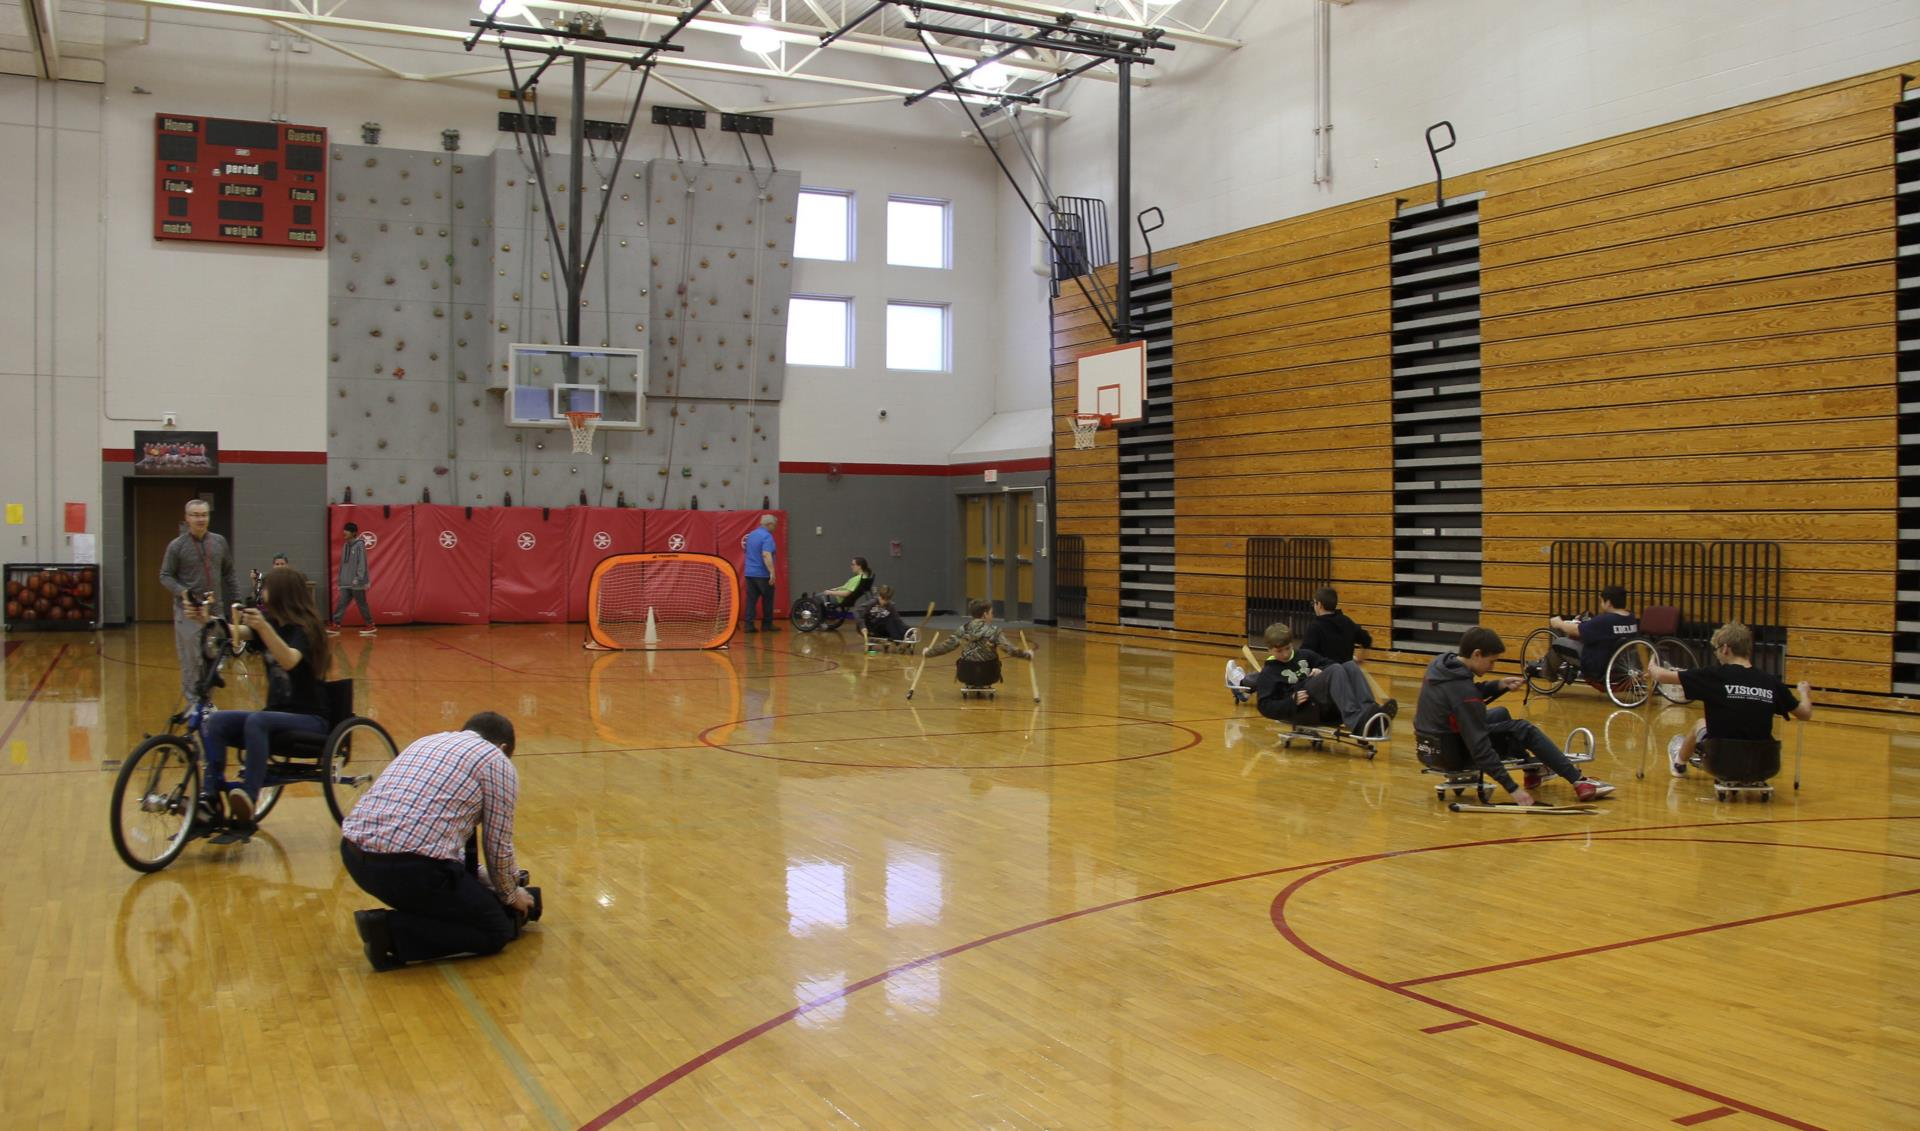 students taking part in adaptive sports